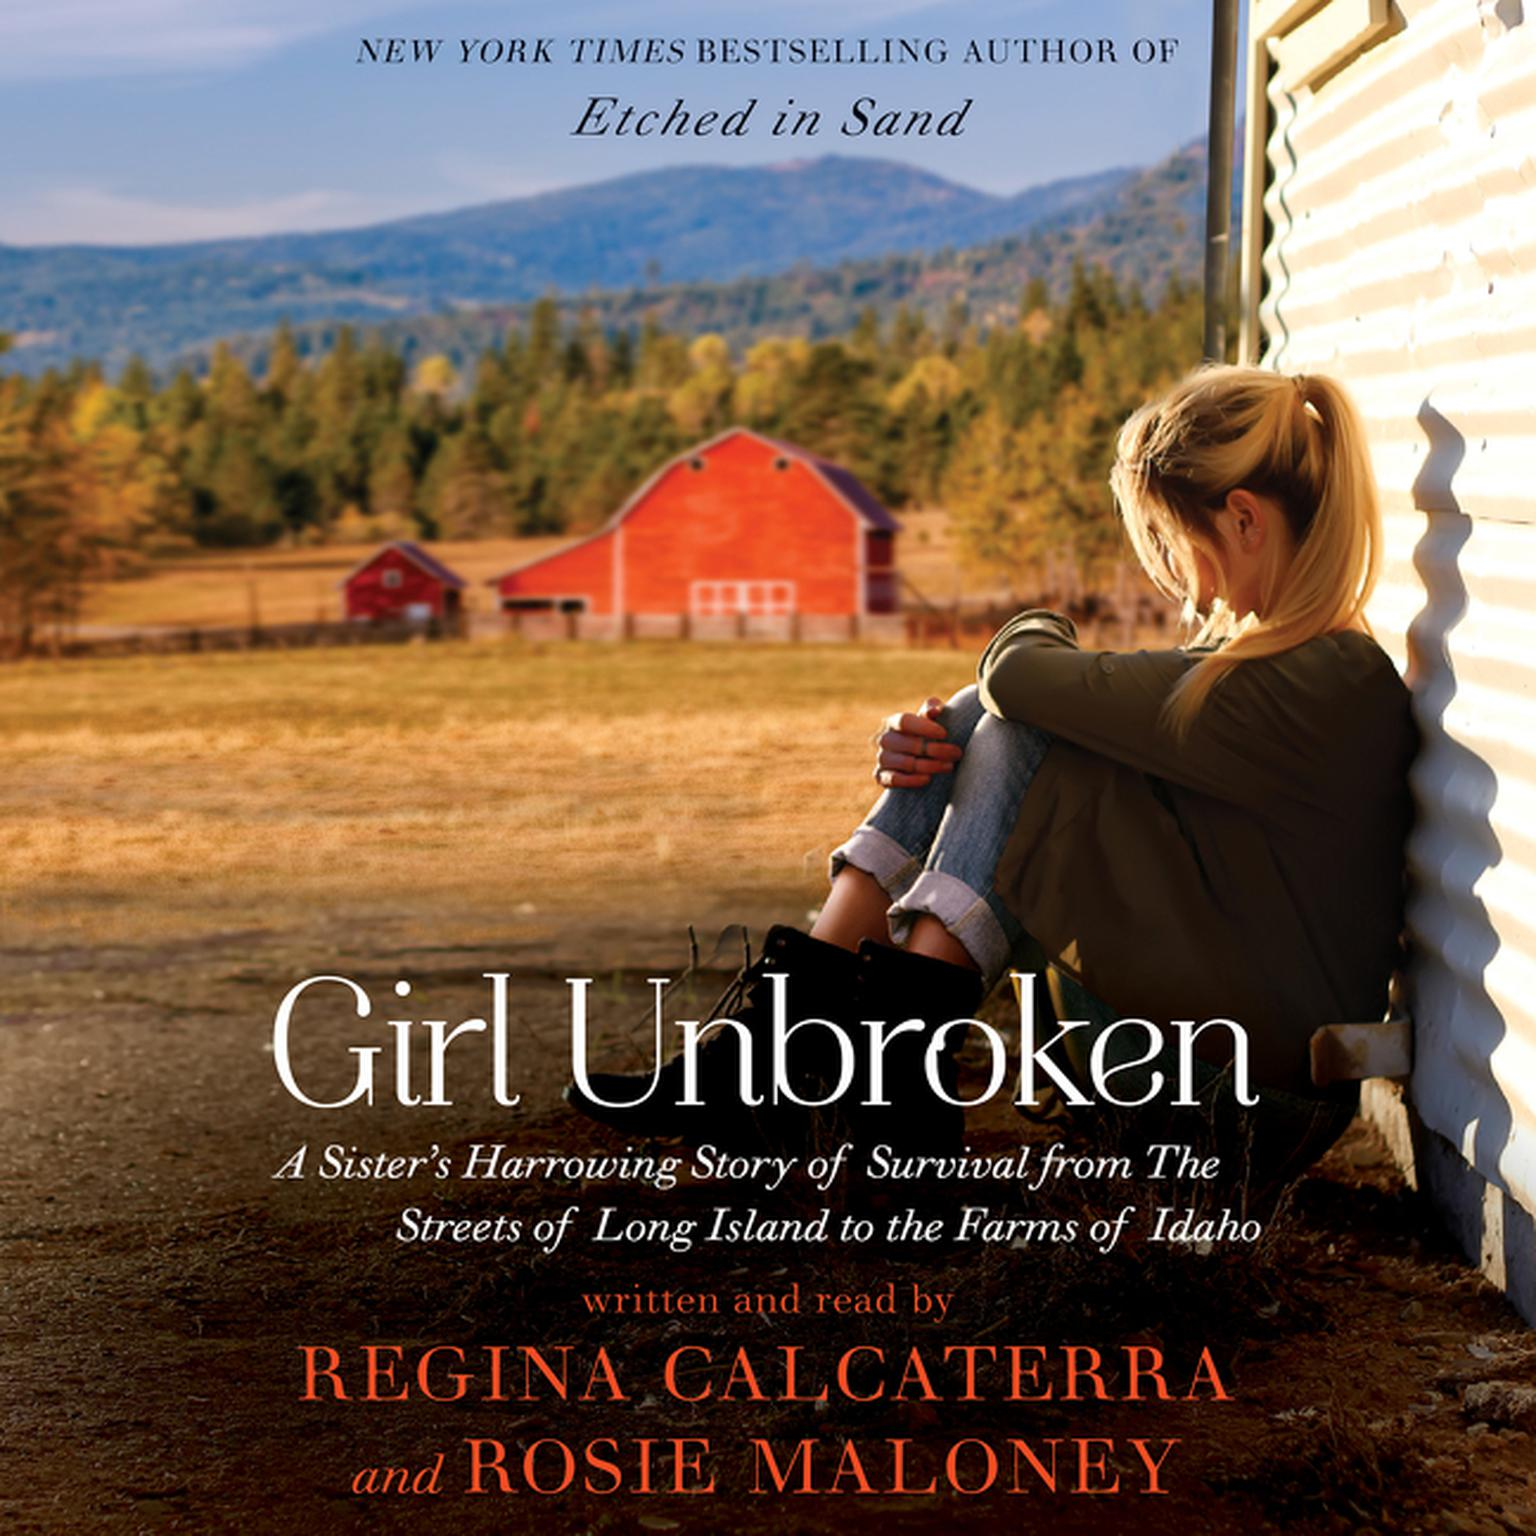 Printable Girl Unbroken: A Sister's Harrowing Story of Survival from The Streets of Long Island to the Farms of Idaho Audiobook Cover Art